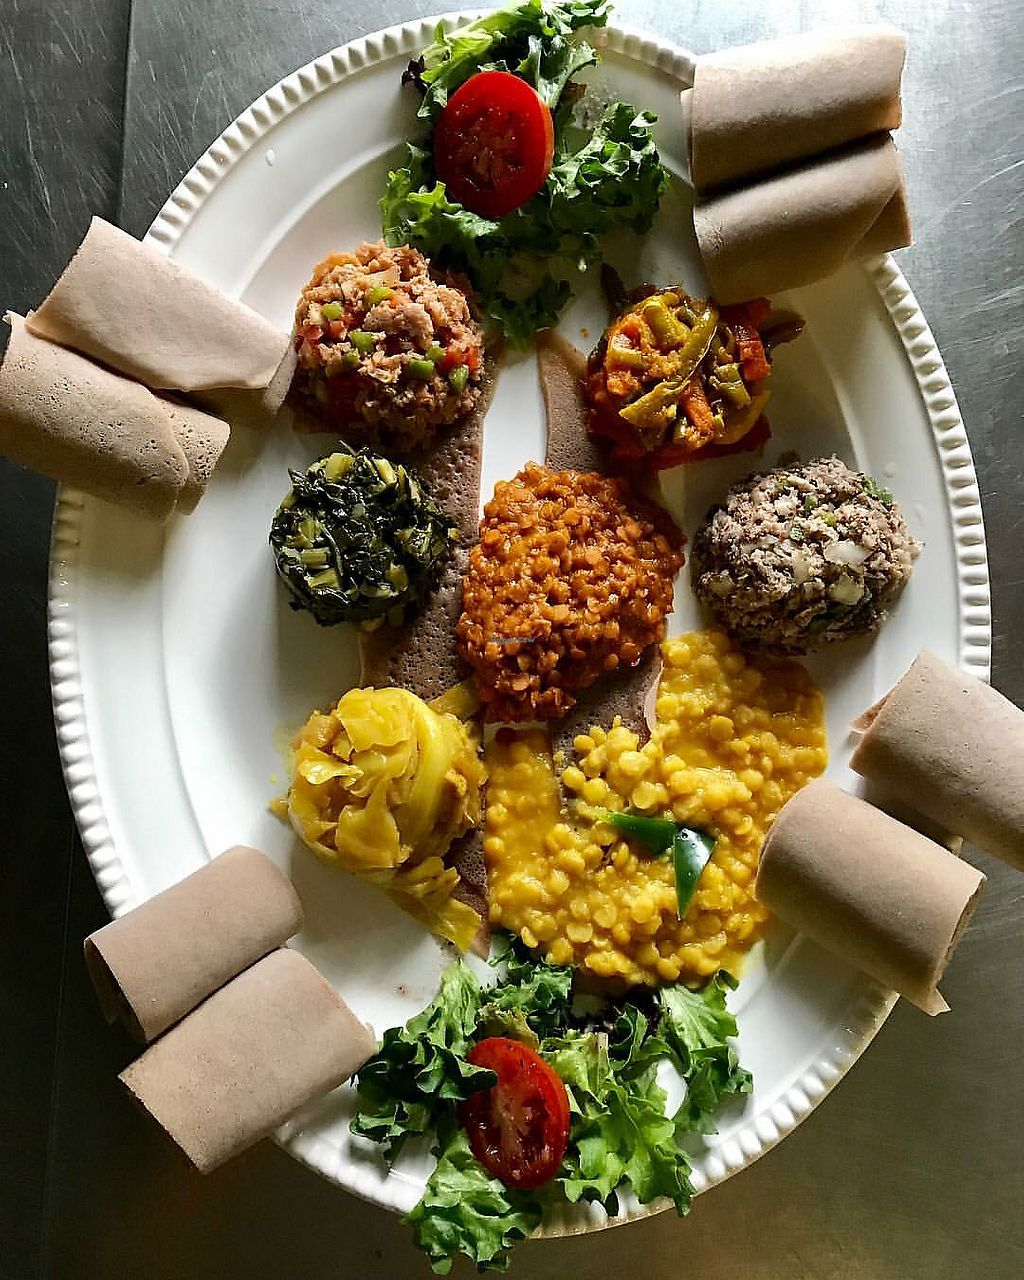 """Photo of Queen of Sheeba  by <a href=""""/members/profile/kmilitello"""">kmilitello</a> <br/>Vegetarian platter with 7 items  <br/> September 19, 2017  - <a href='/contact/abuse/image/63095/306064'>Report</a>"""